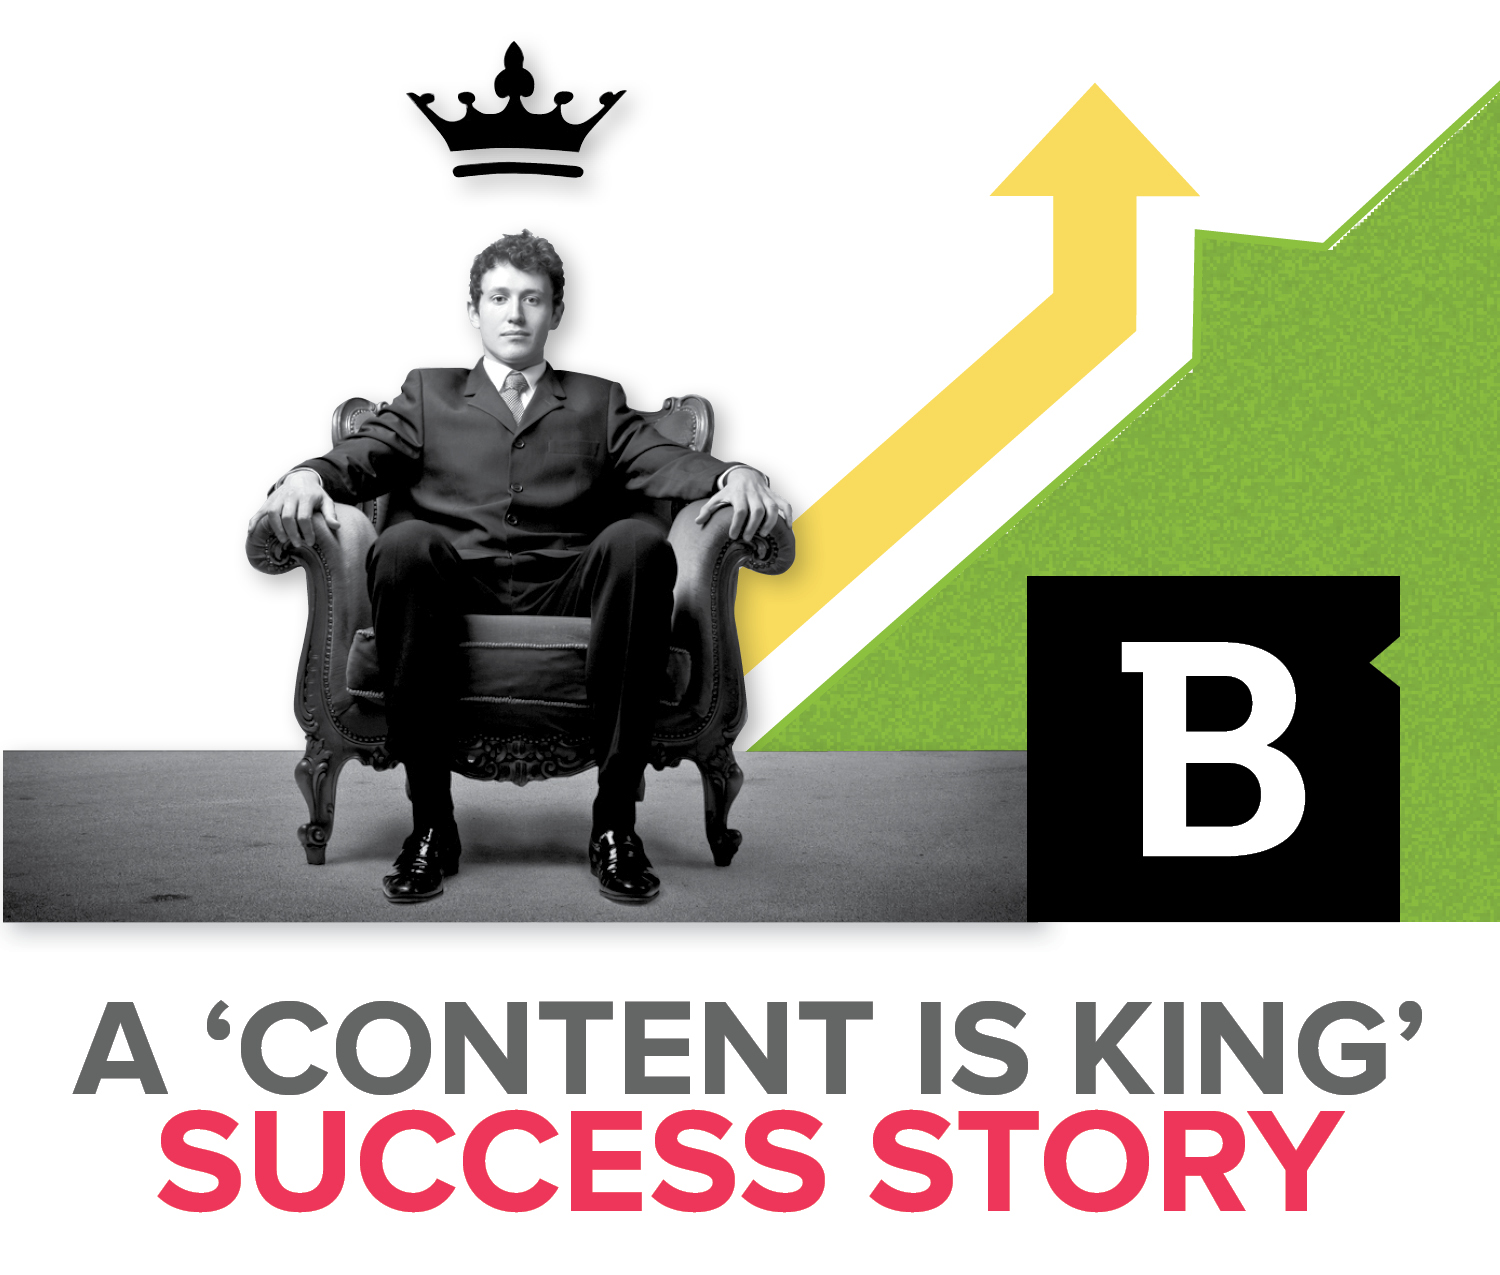 Marketers say content is king because it provides value through conversions.